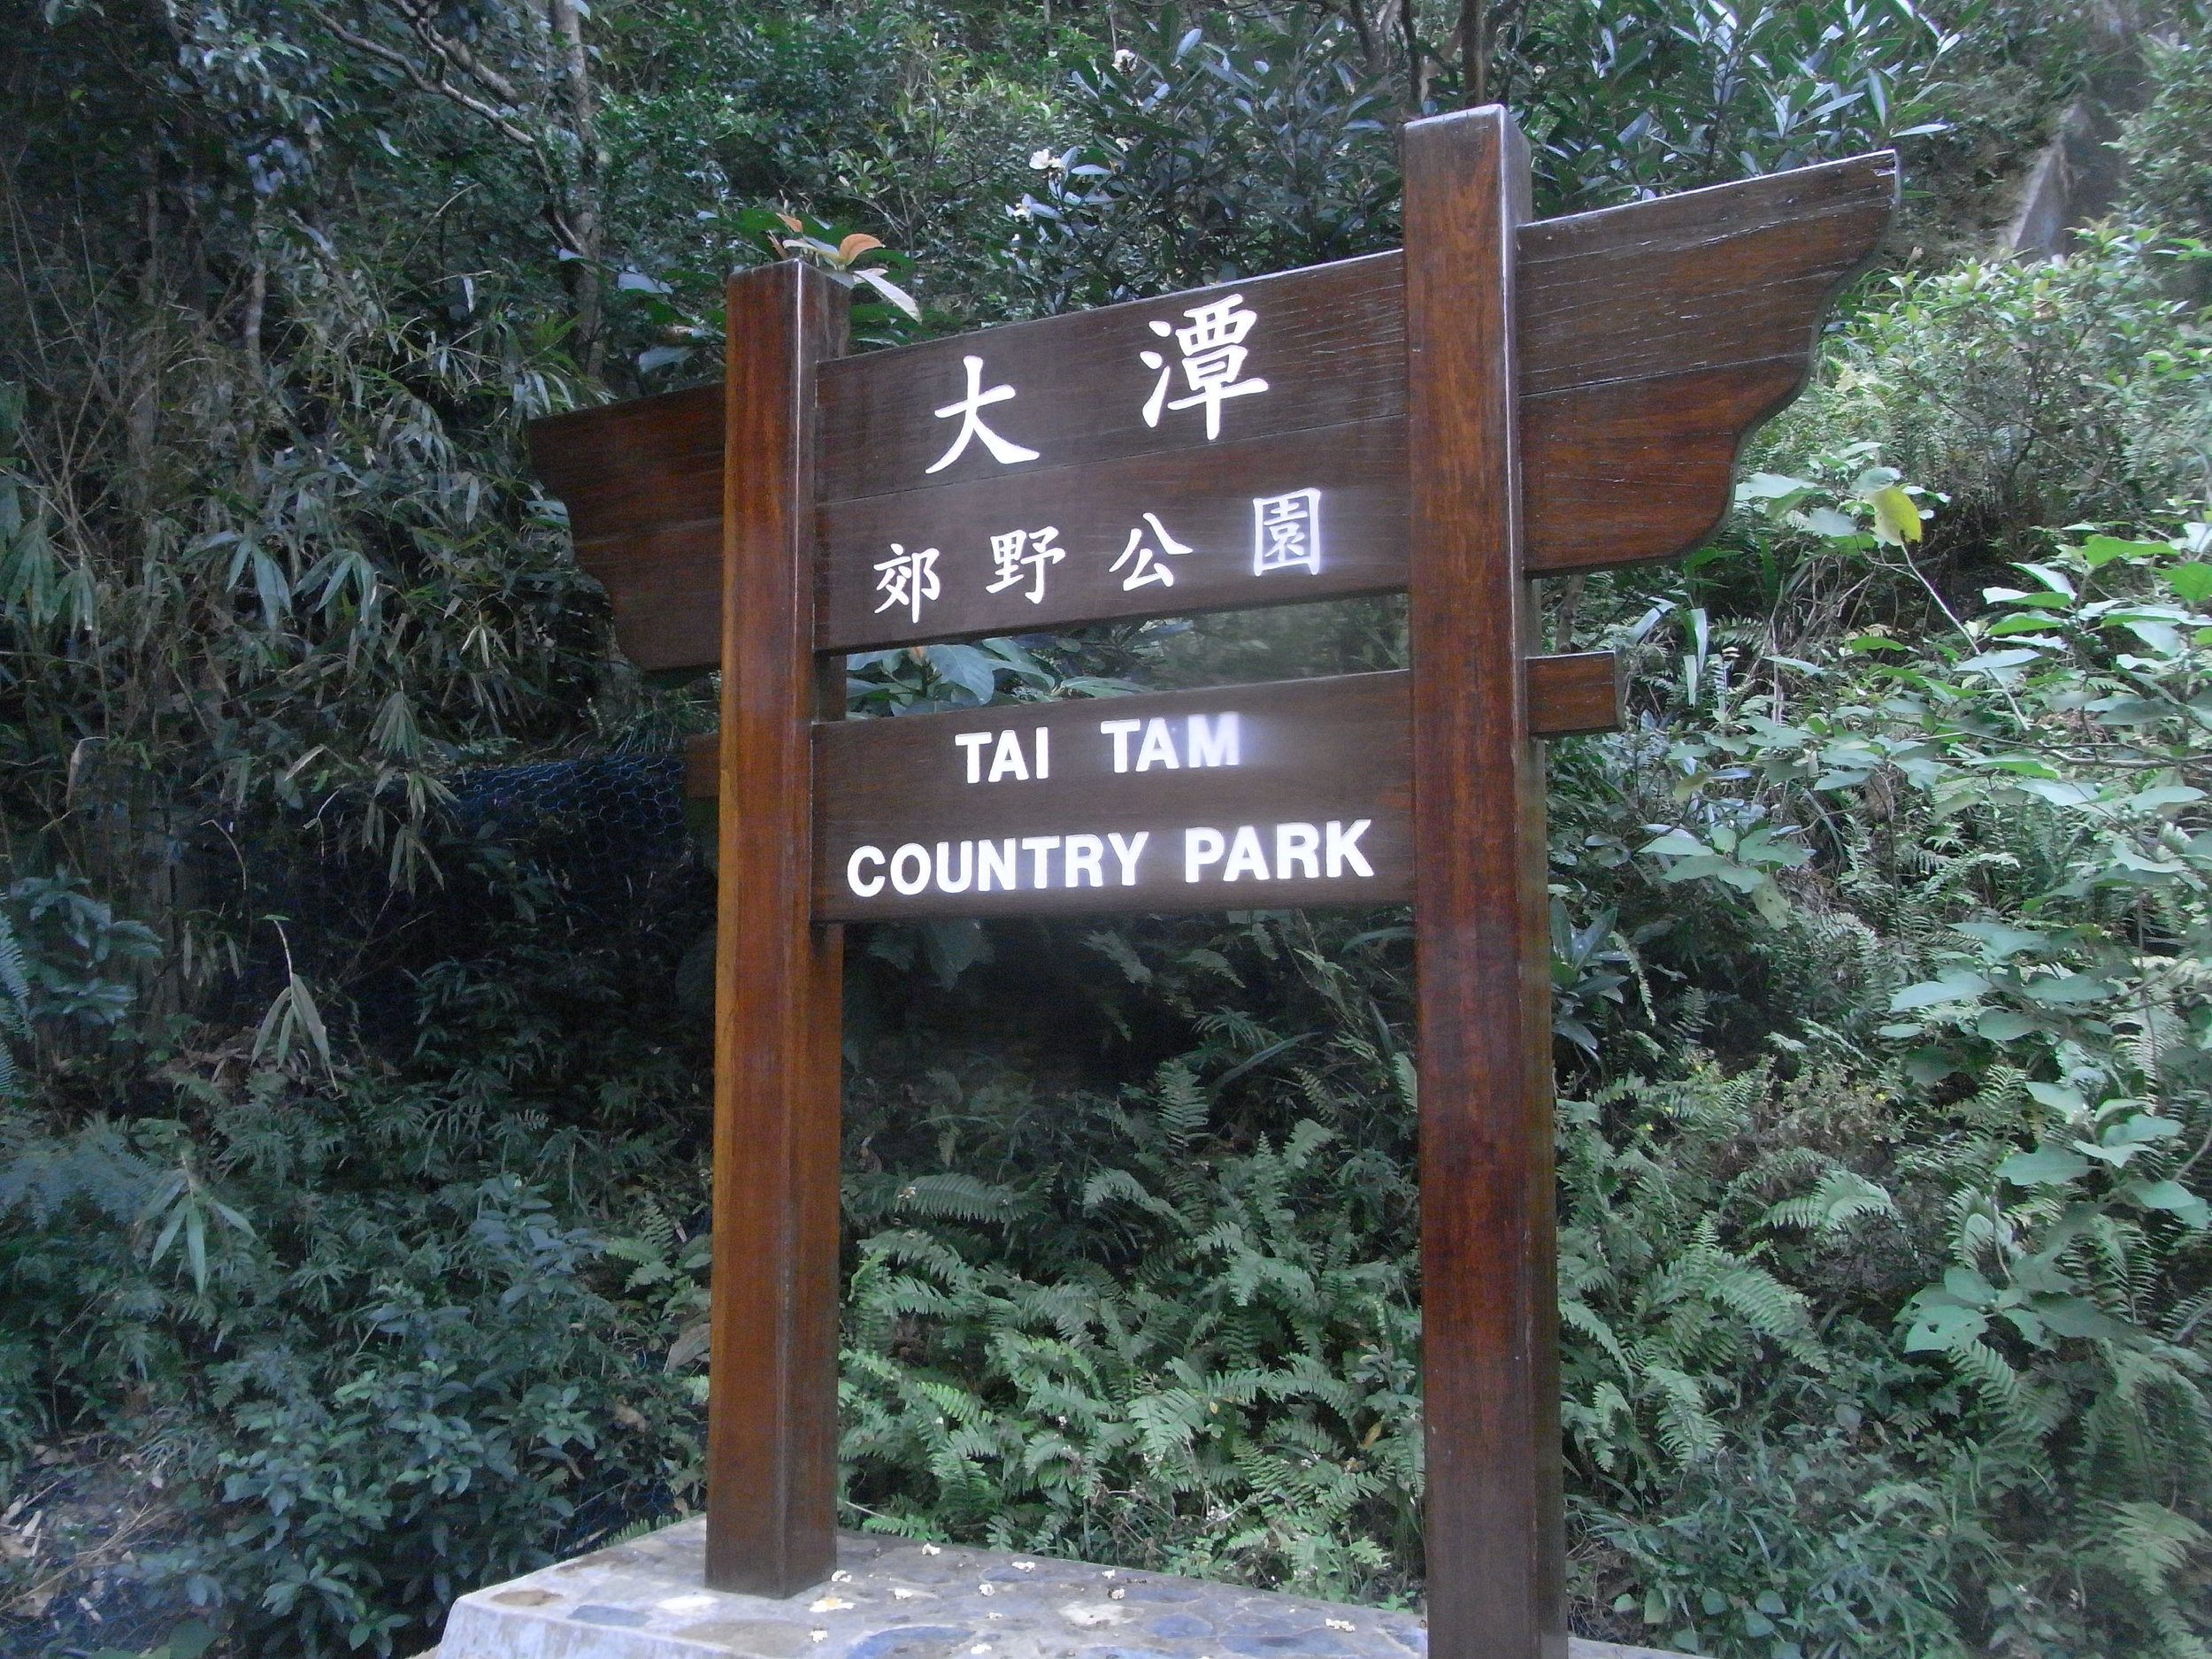 Tai_Tam_Country_Park.JPG